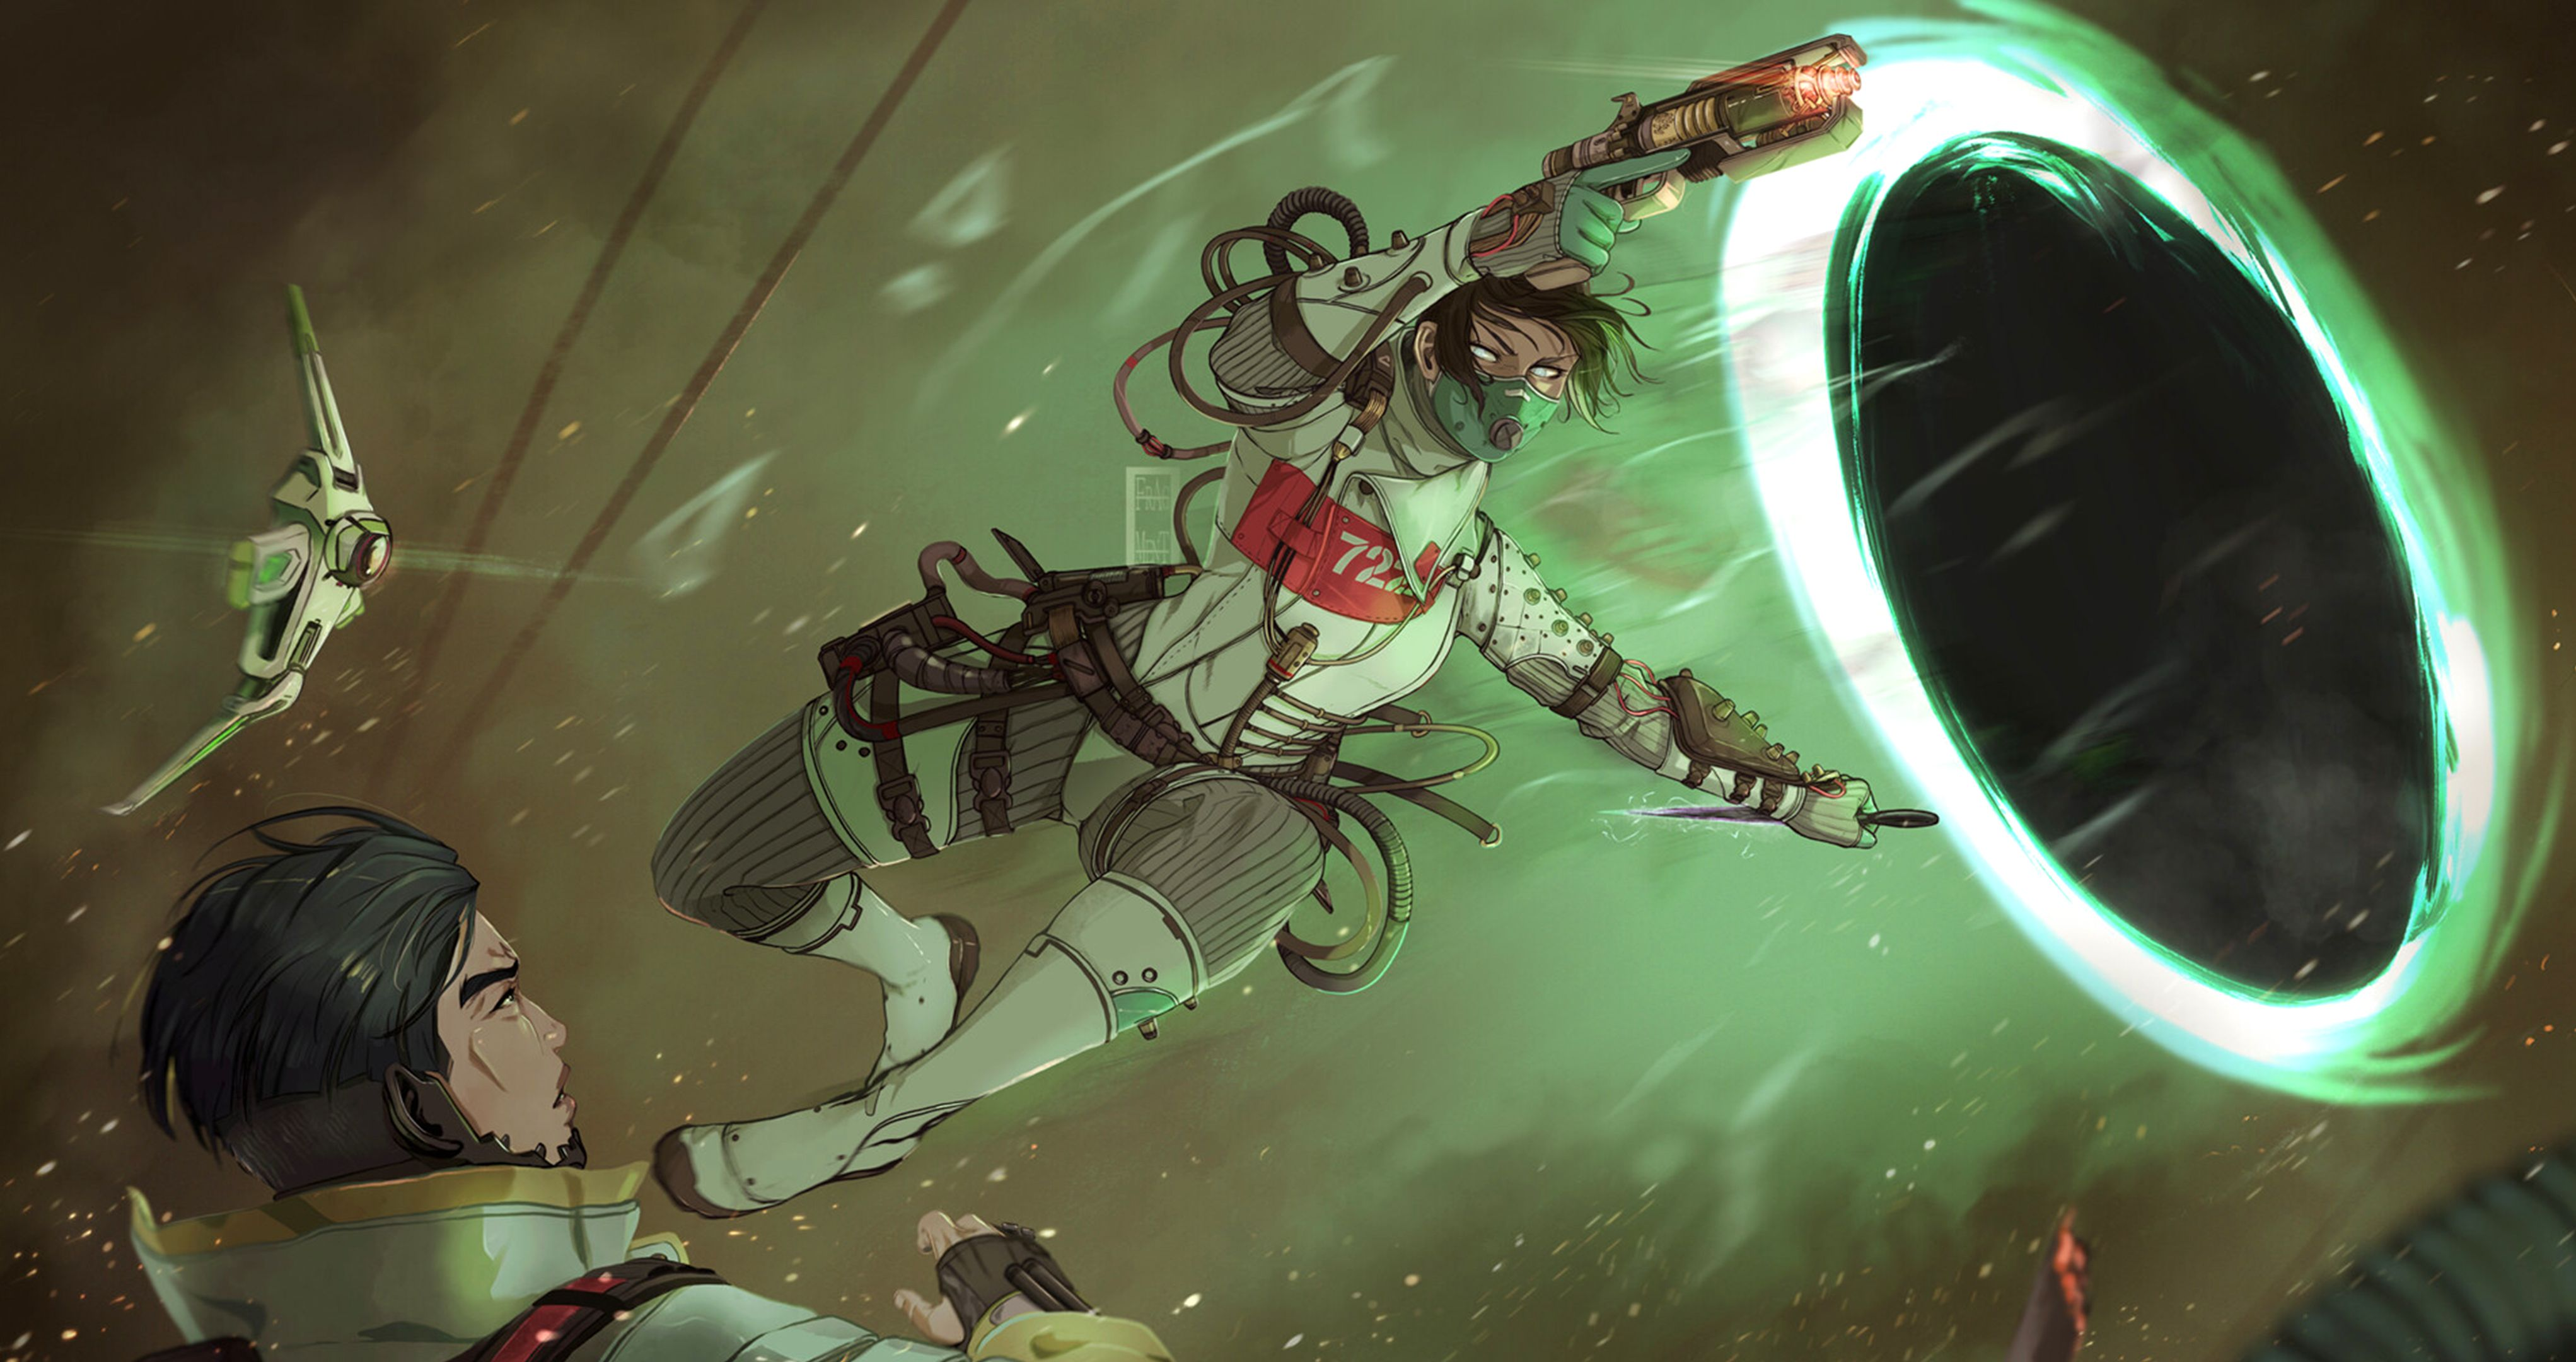 Crypto apex legends image by Roland Adams on Titanfall in